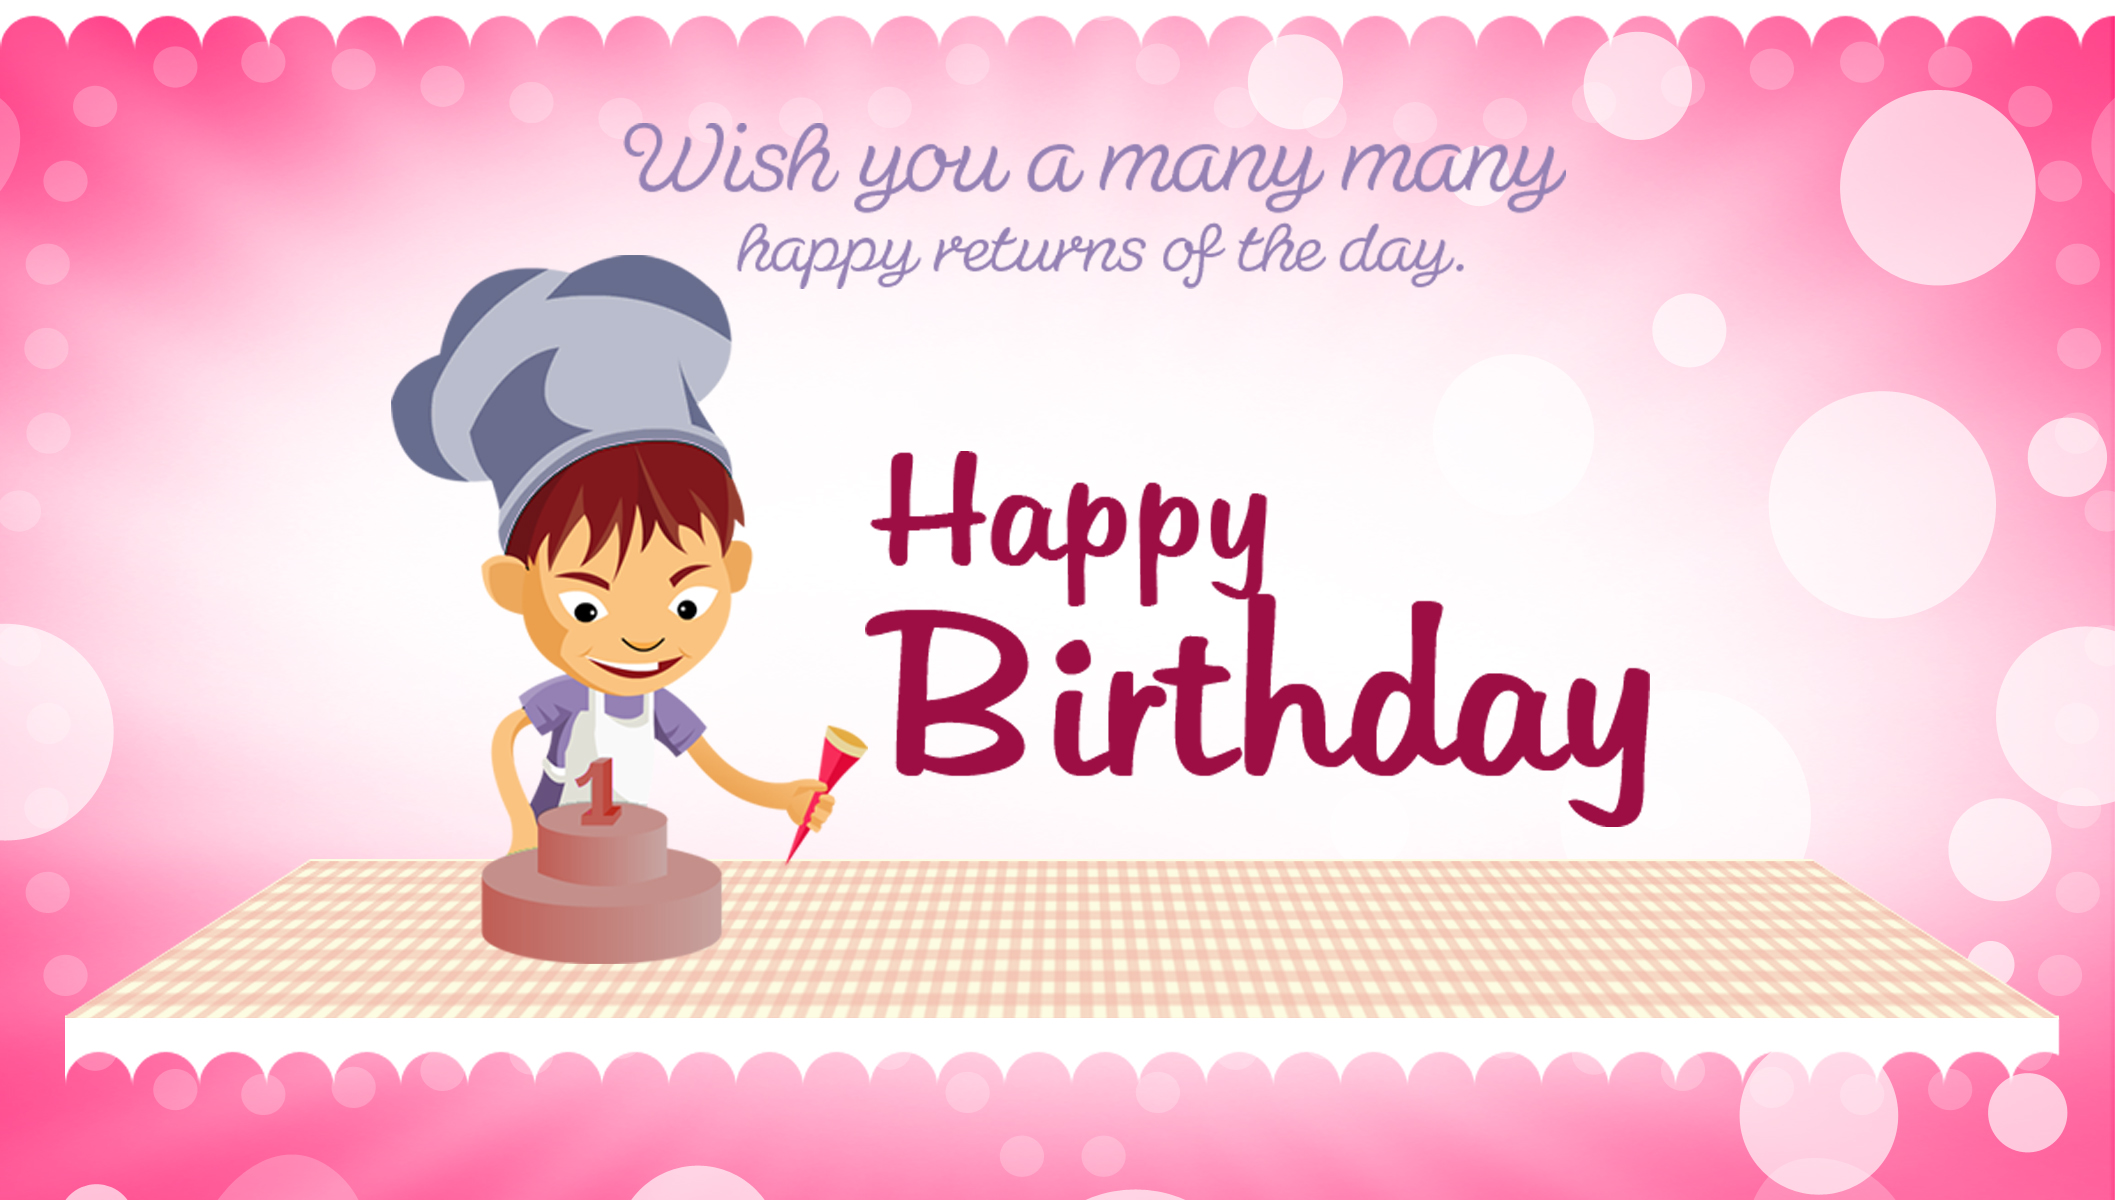 download birthday pictures and wishes ; birthday-wishes-card-unique-wish-you-very-happy-birthday-wishes-greeting-card-download-of-birthday-wishes-card